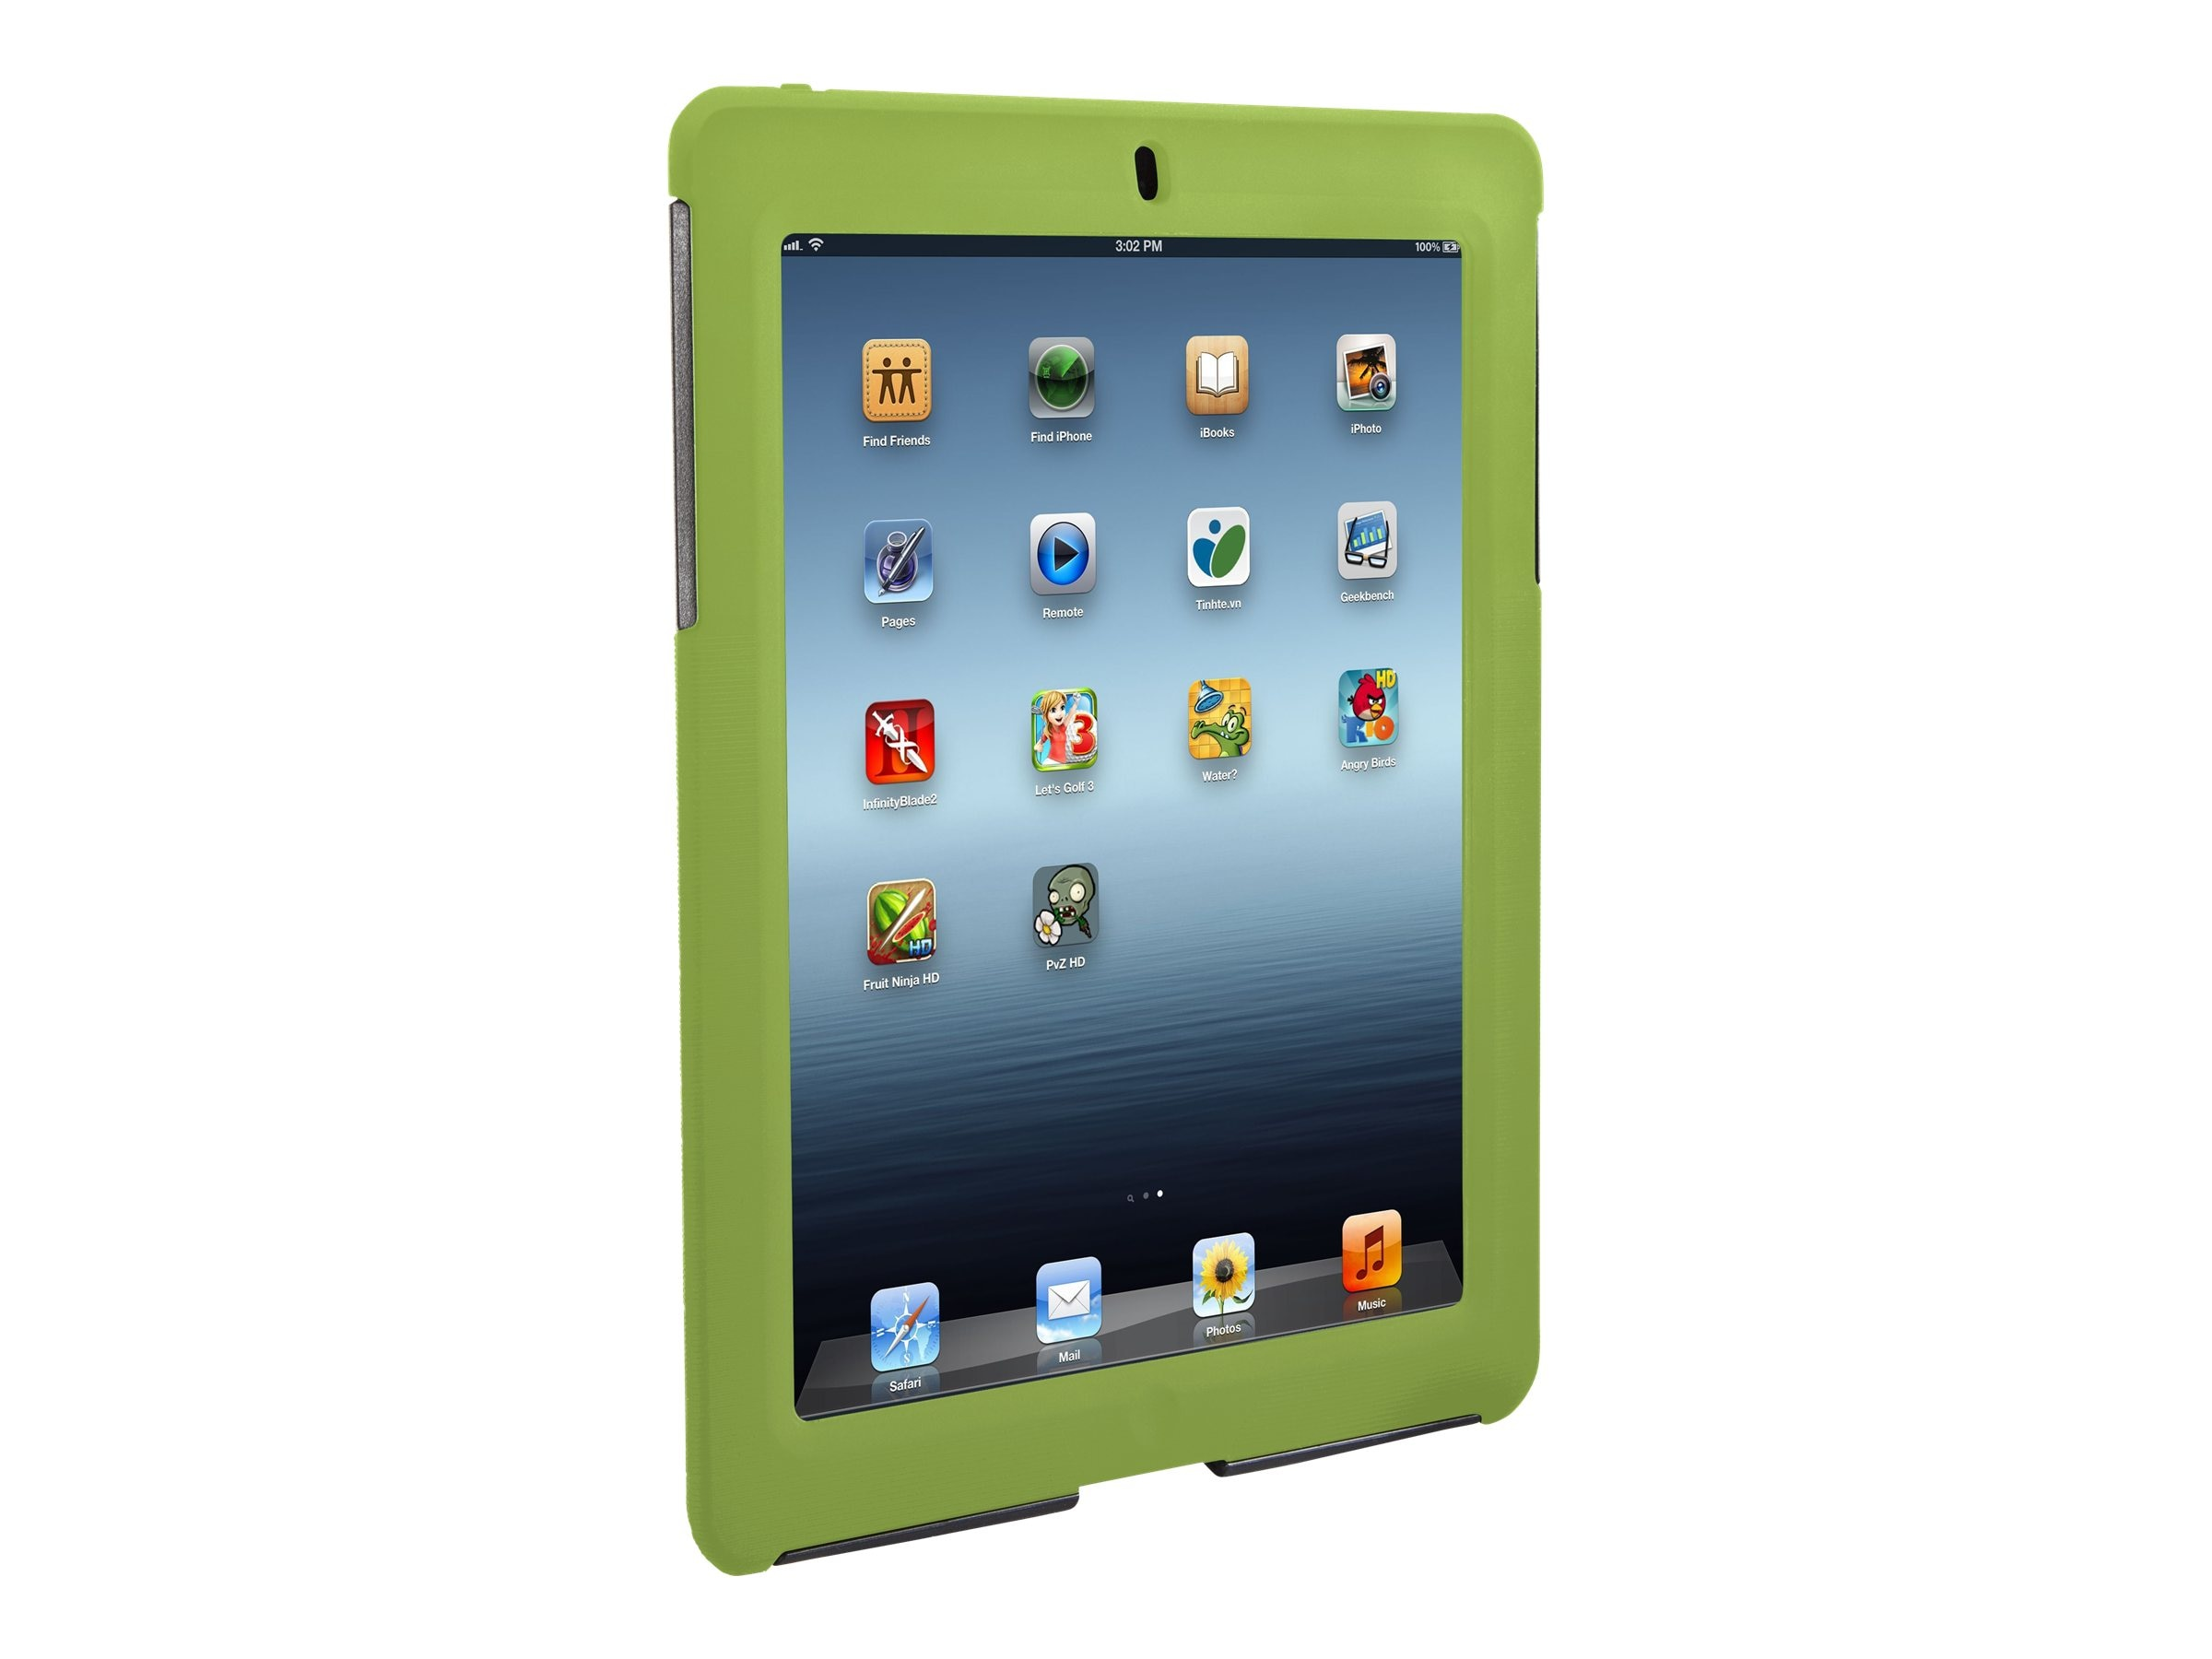 Targus Rugged Safeport Case for iPad 3 4, Green, THD04505US